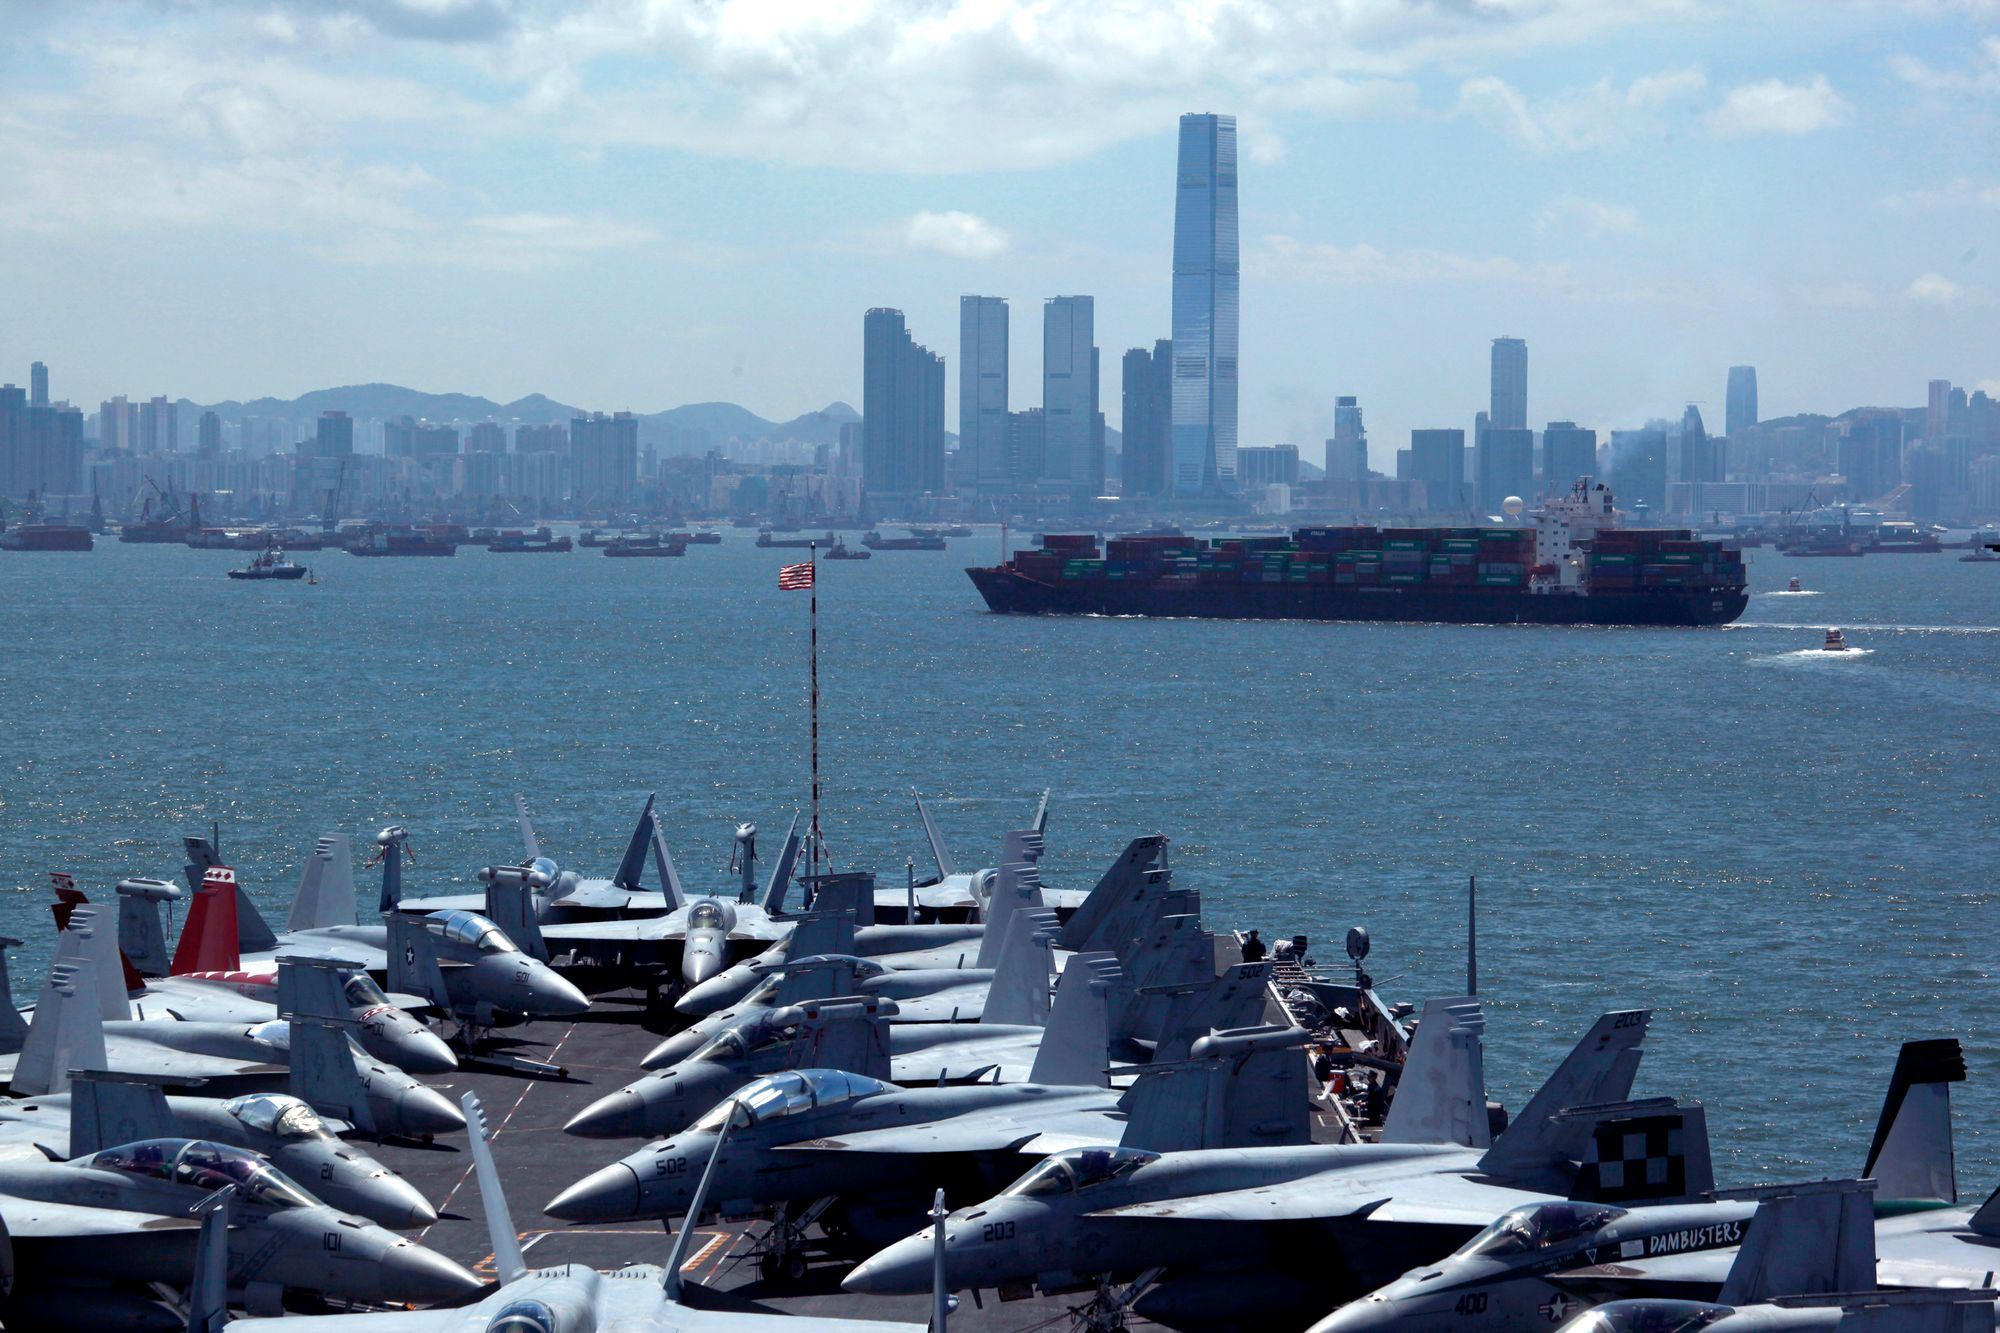 Le porte-avion USS George Washington faisant escale devant Hong Kong en 2012.